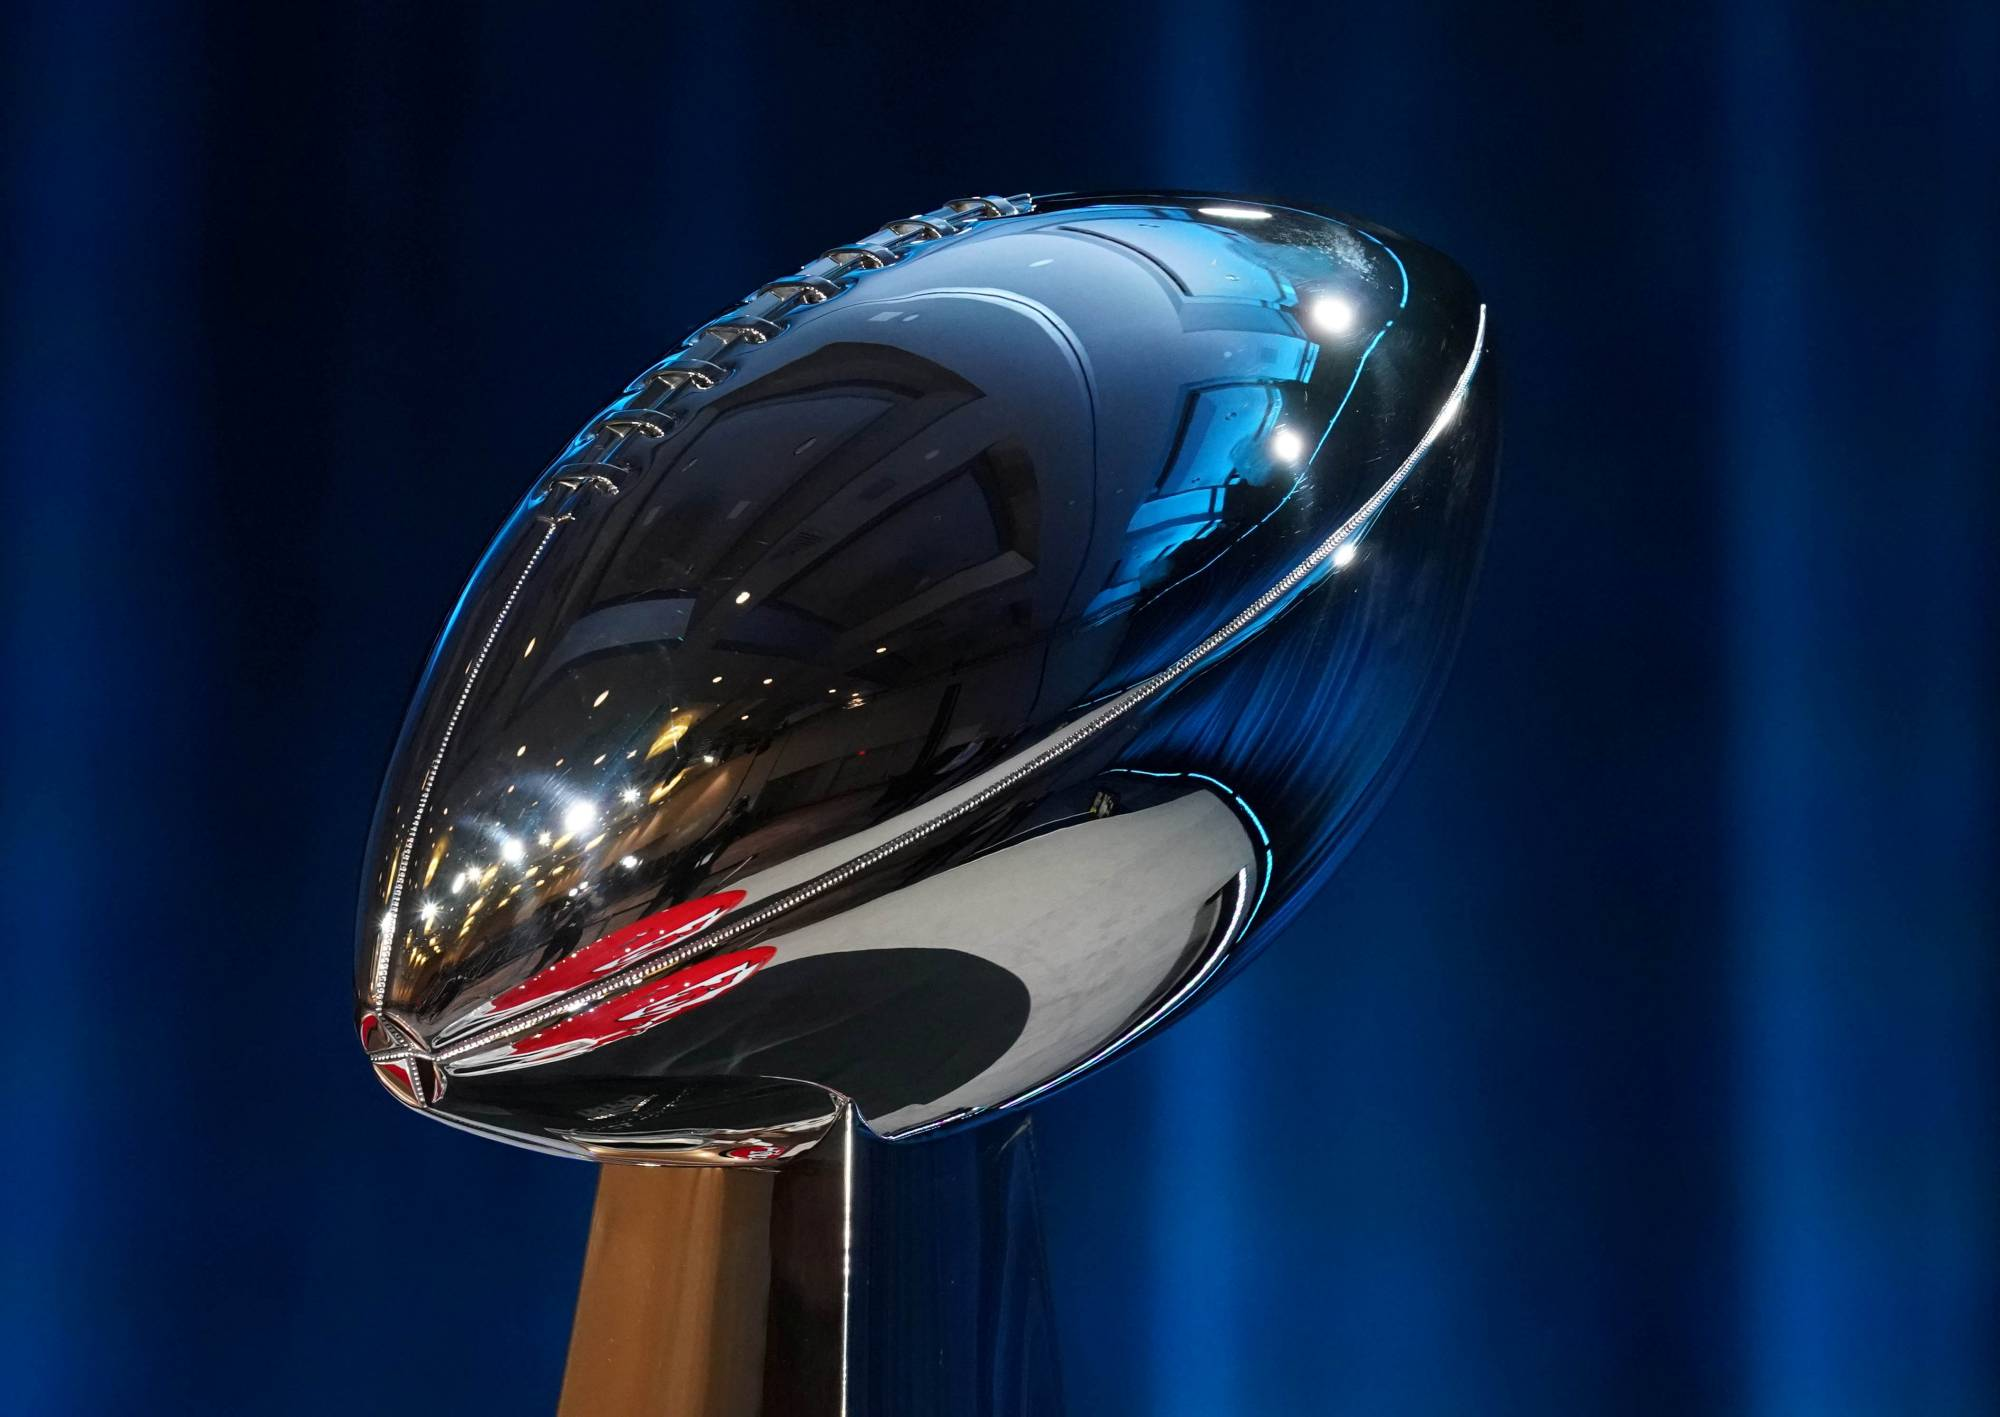 The Vince Lombardi Trophy is displayed during a news conference before Super Bowl LIV at Hilton Downtown in Miami in January last year. | USA TODAY / VIA REUTERS